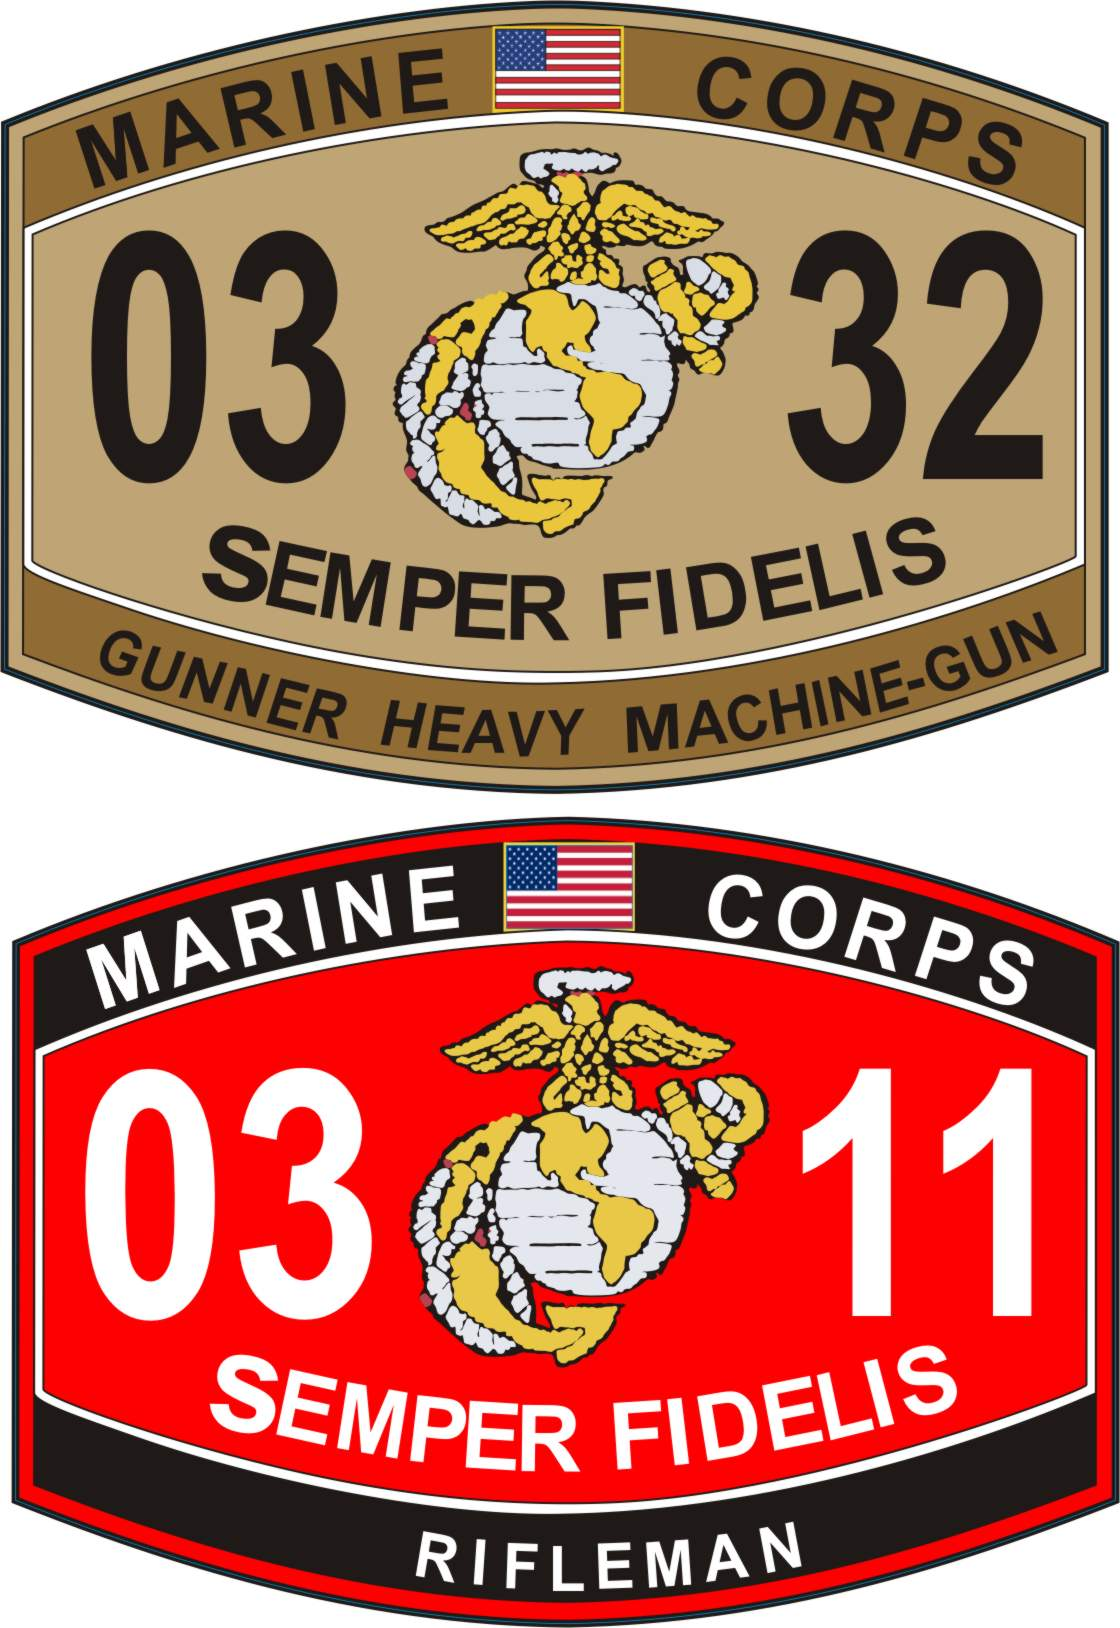 mos military occupational specialty for marines